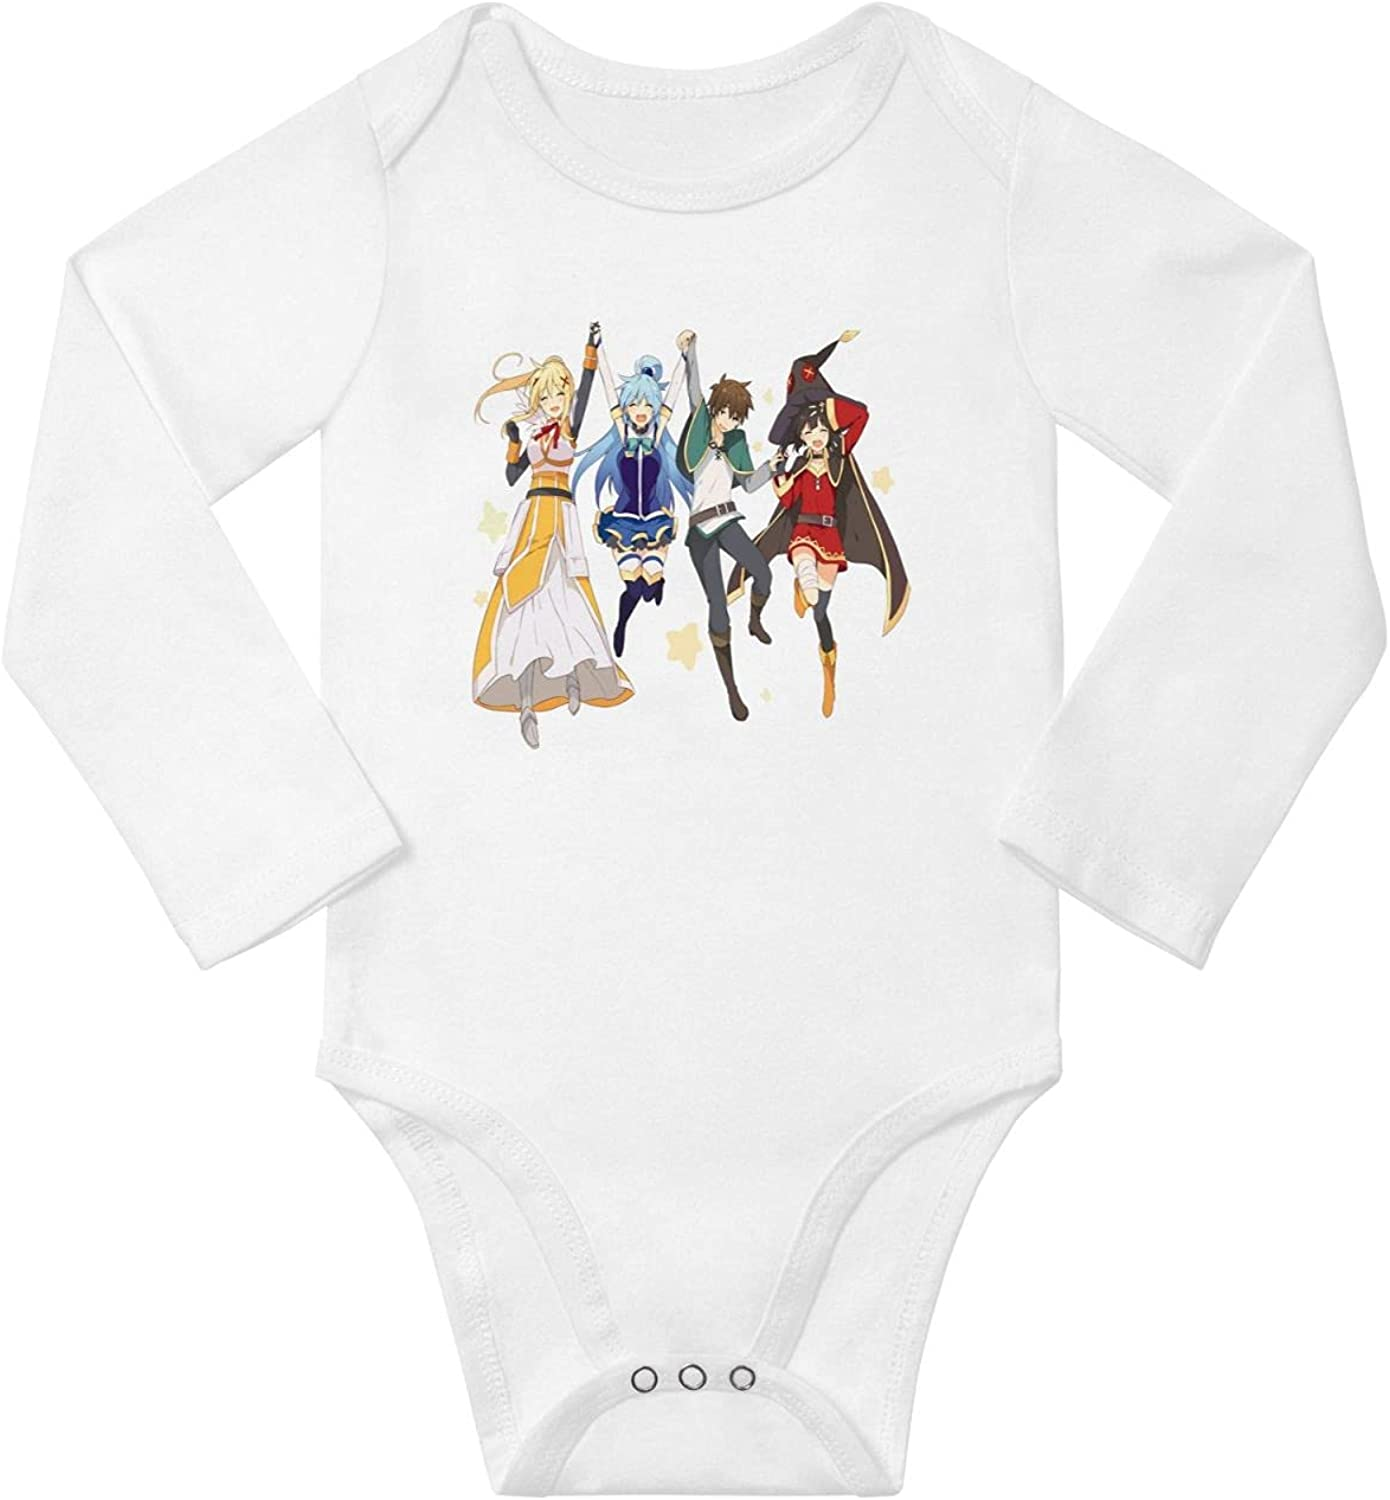 Baby Onesies Small child Popular brand in the world Raleigh Mall Unisex Cartoons S Sleeve Bodysuit Long